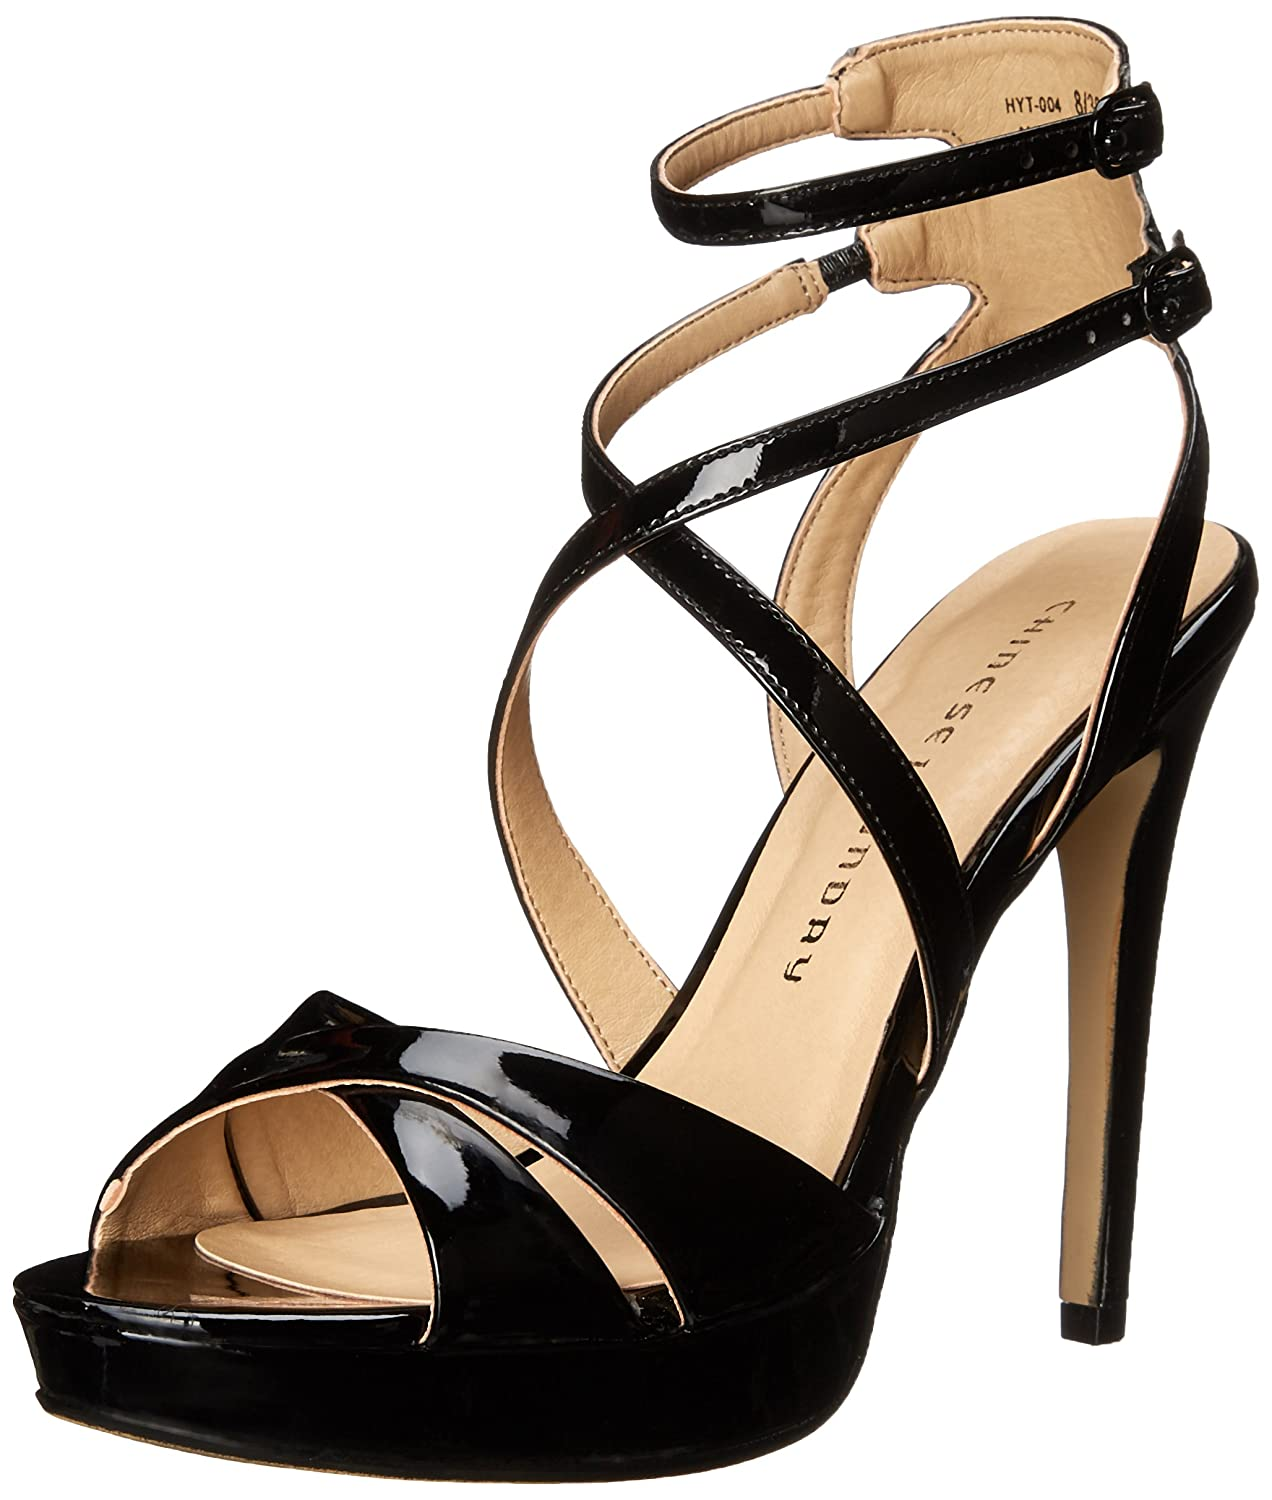 Amazon | Chinese Laundry Womens HIghlight Open Toe Ankle Strap Platform  Pumps | Chinese Laundry(チャイニーズランドリー) | パンプス